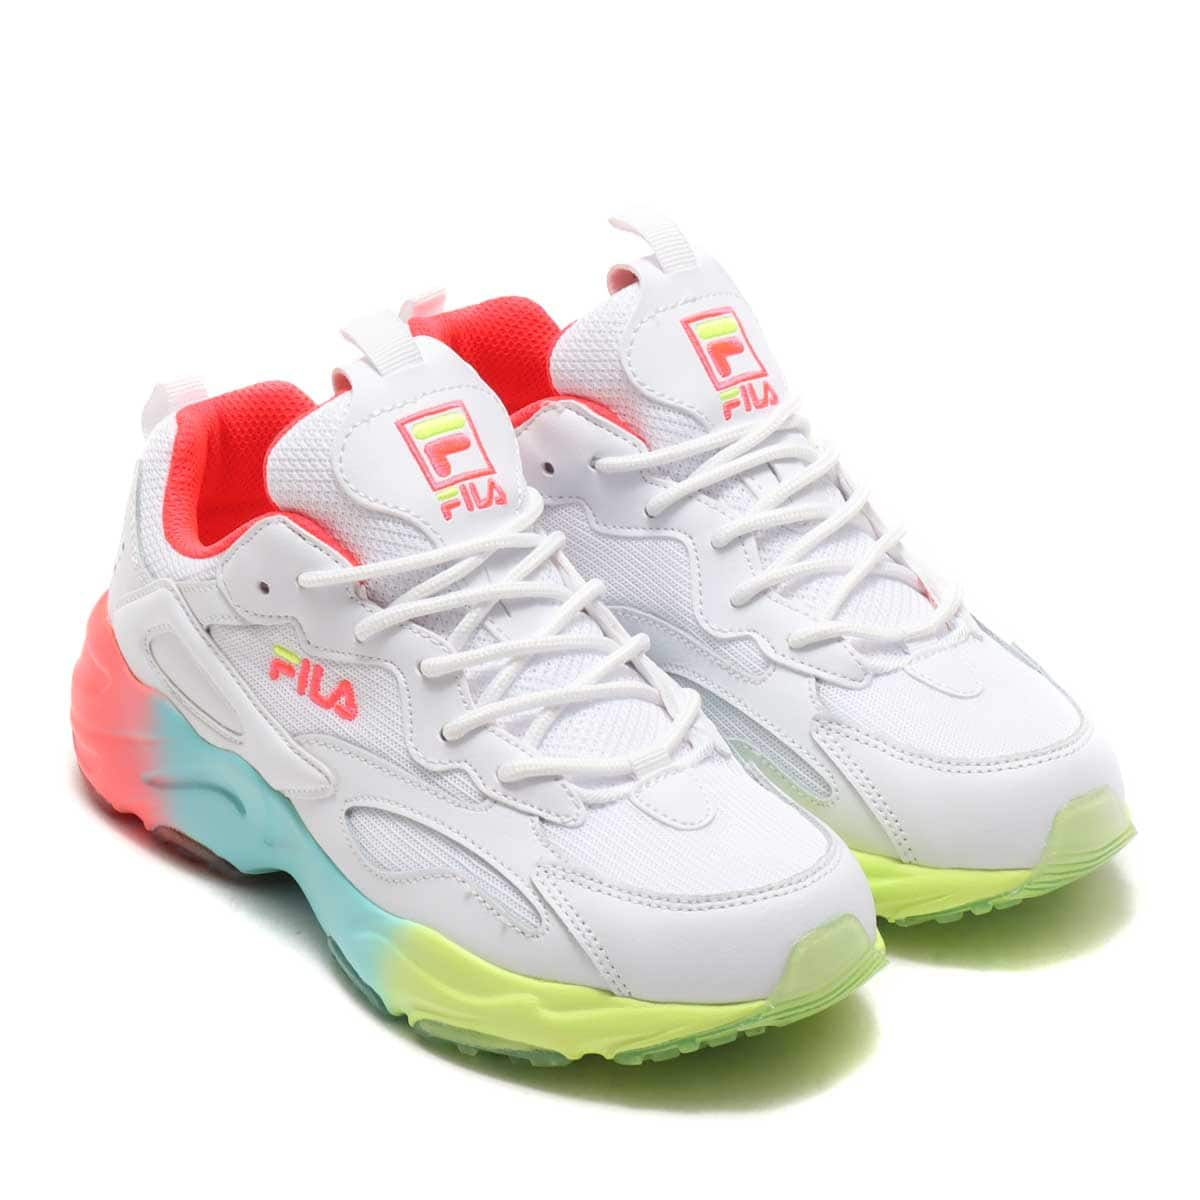 FILA Ray Tracer White / Diva Pink / Safety Yellow 21SS-S_photo_large